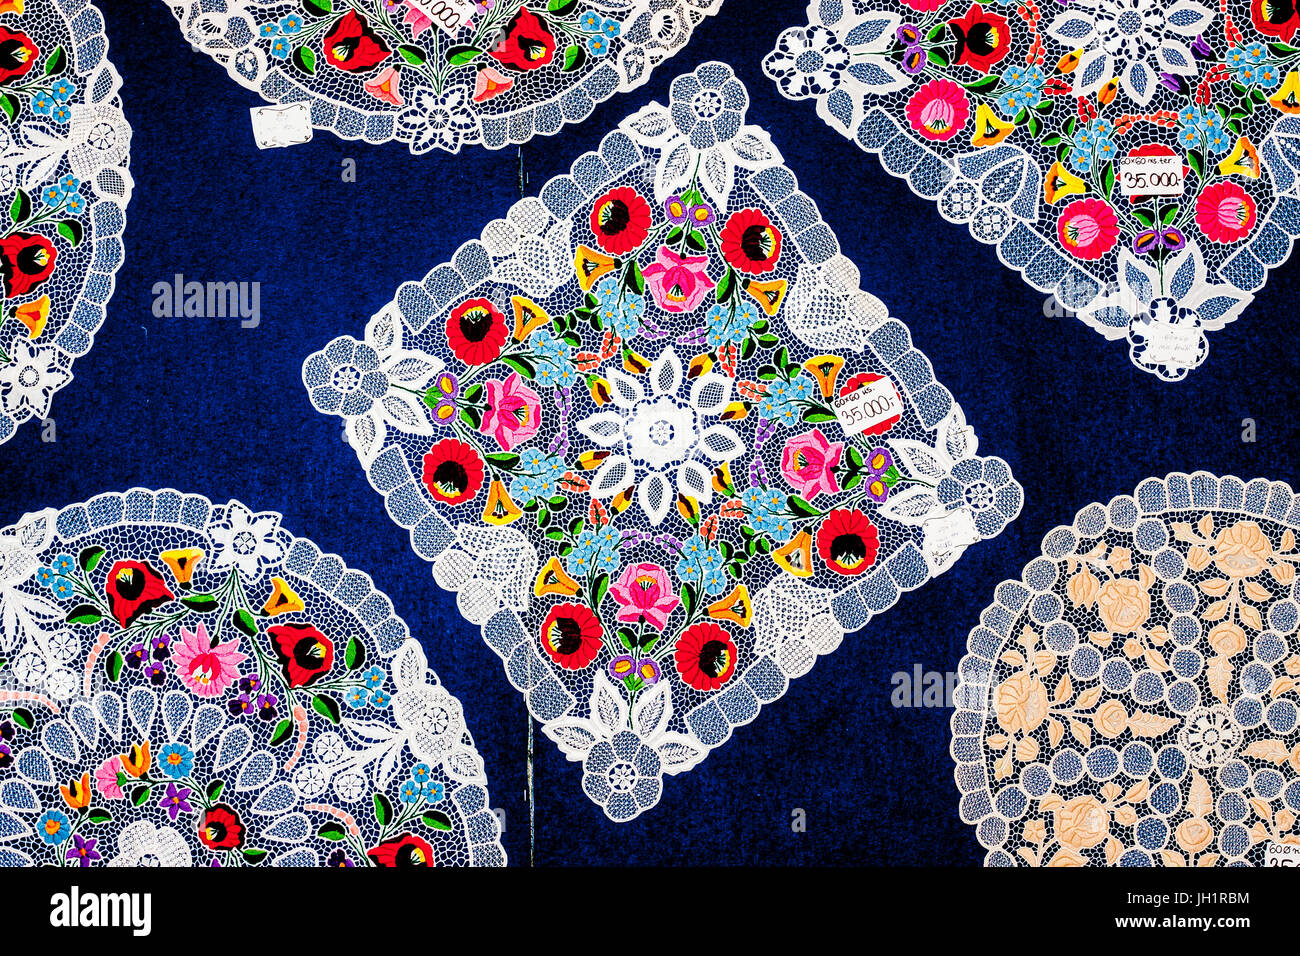 Handmade richeliau embrordered lace tablecloths in Kalocsa, a town in Bács-Kiskun county, Hungary - Stock Image